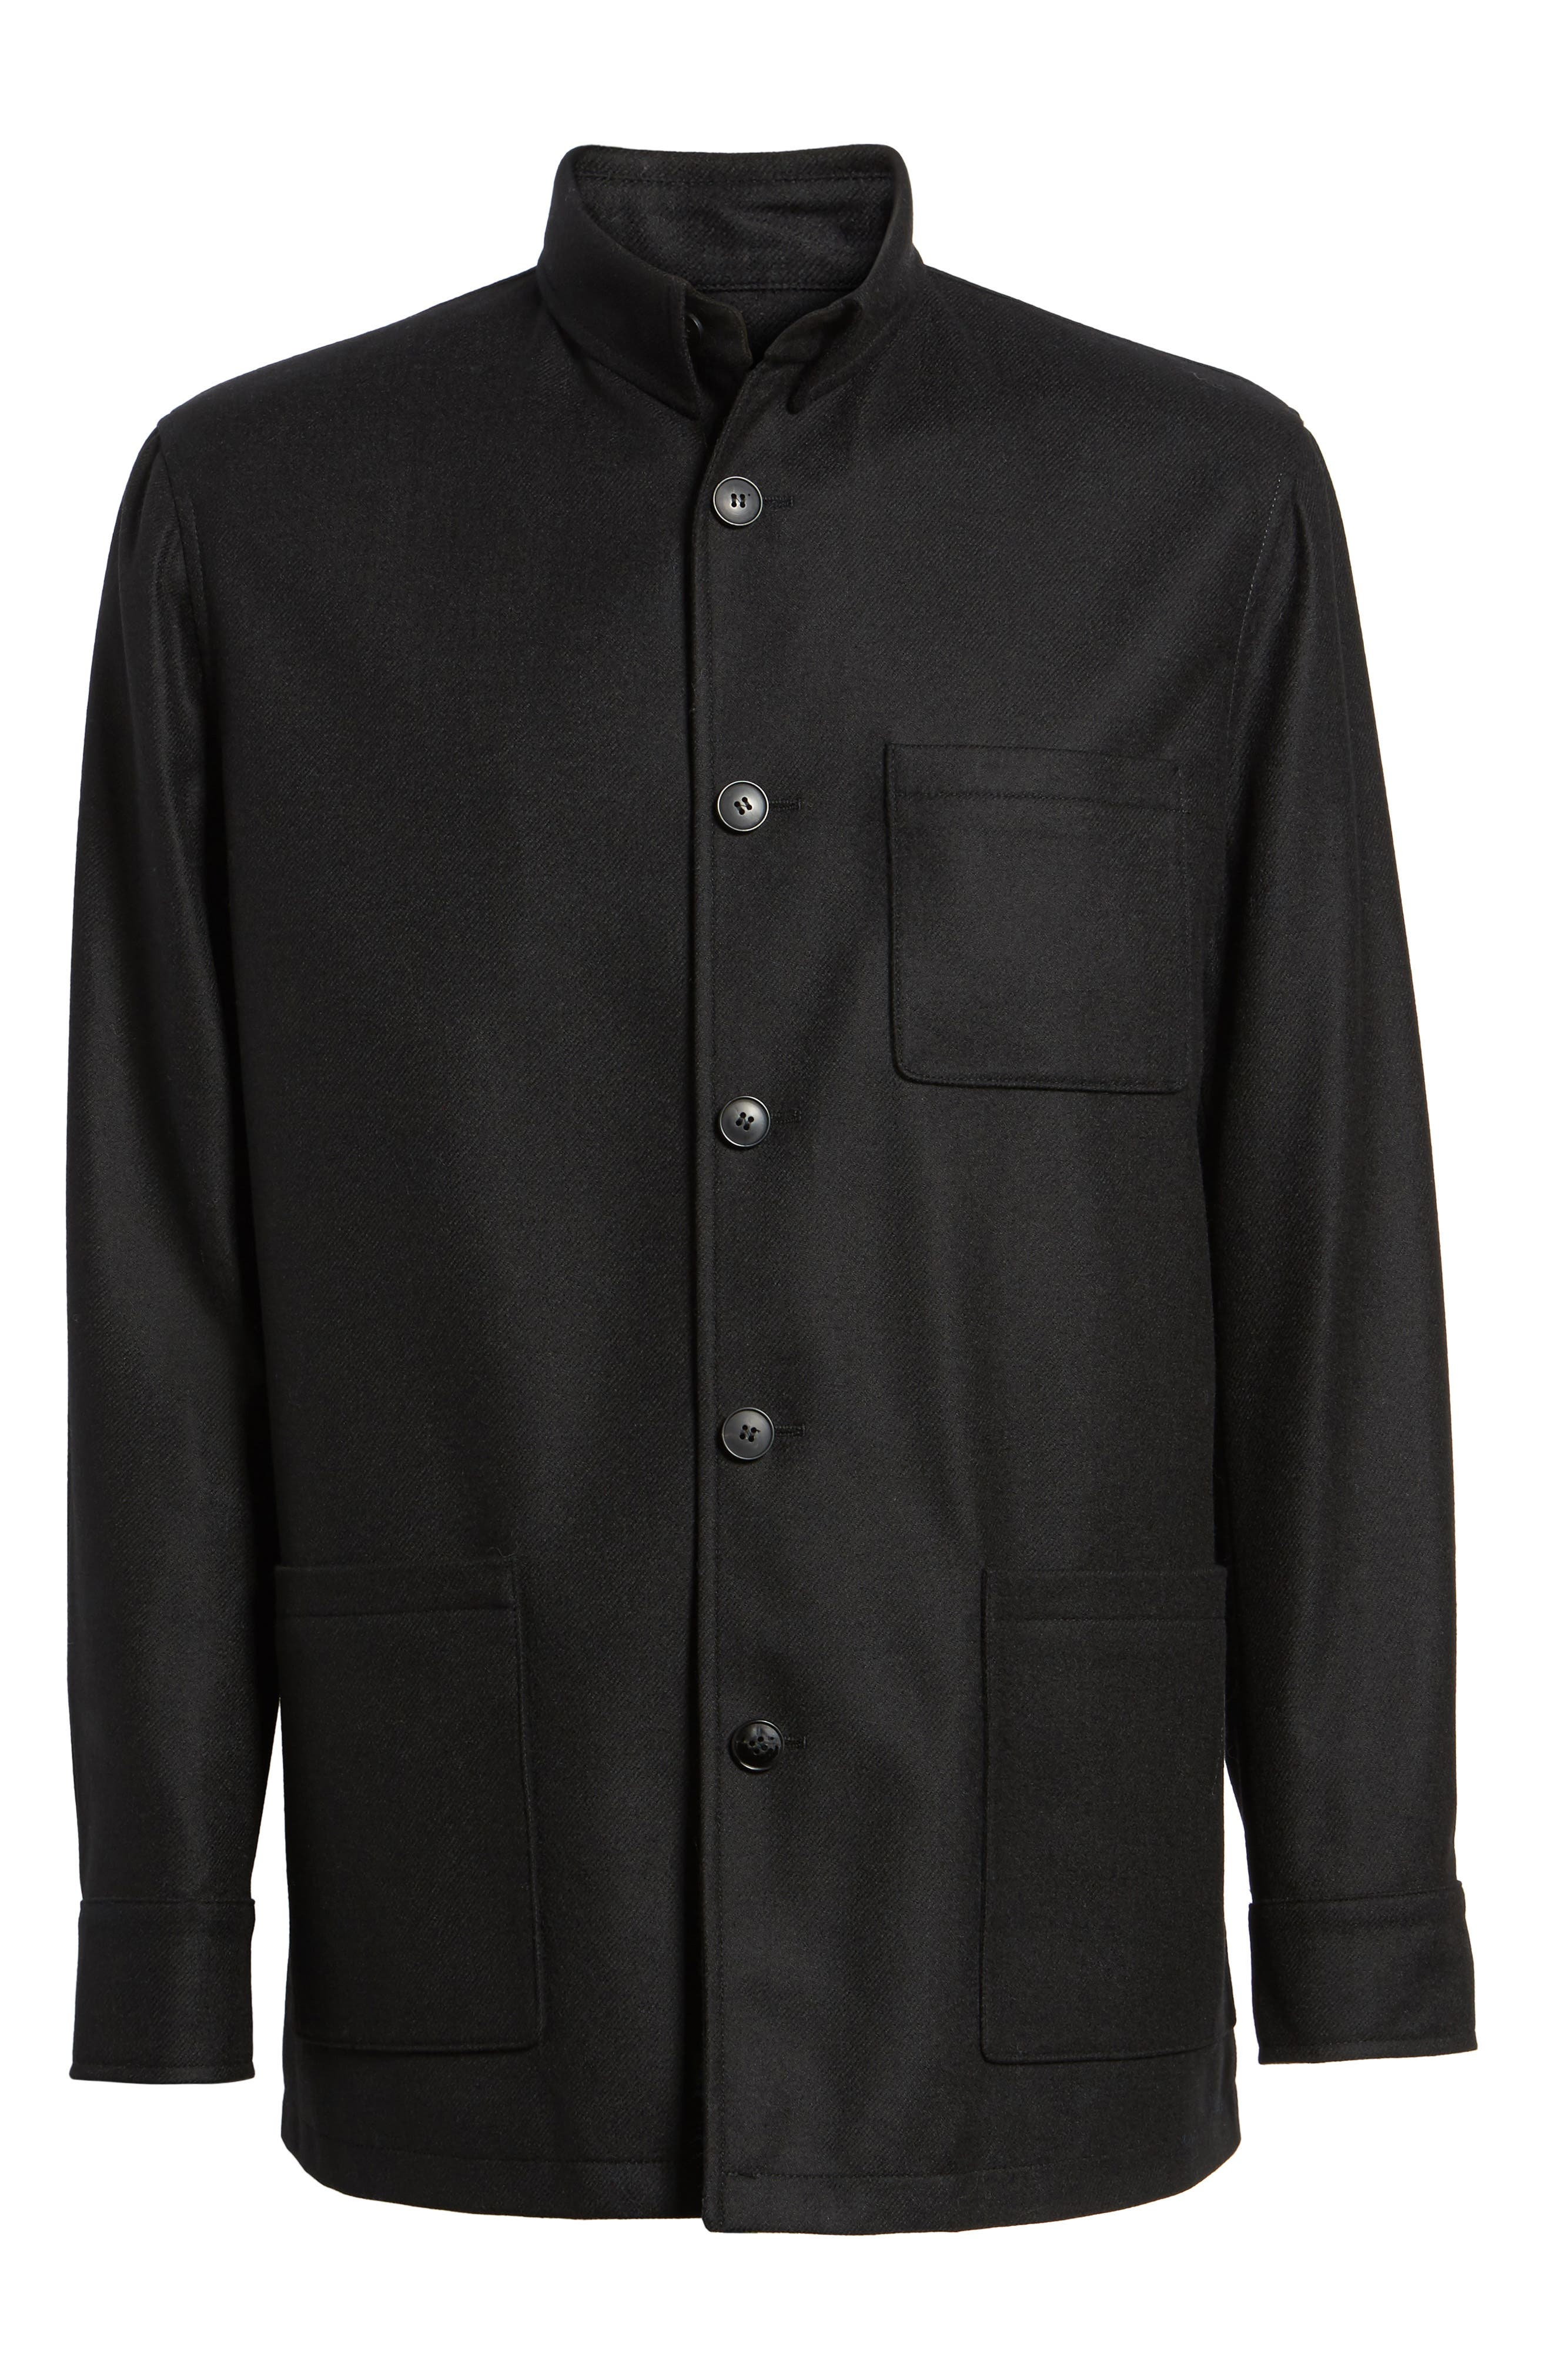 Loro Piana Storm System Shirt Jacket,                             Alternate thumbnail 5, color,                             002